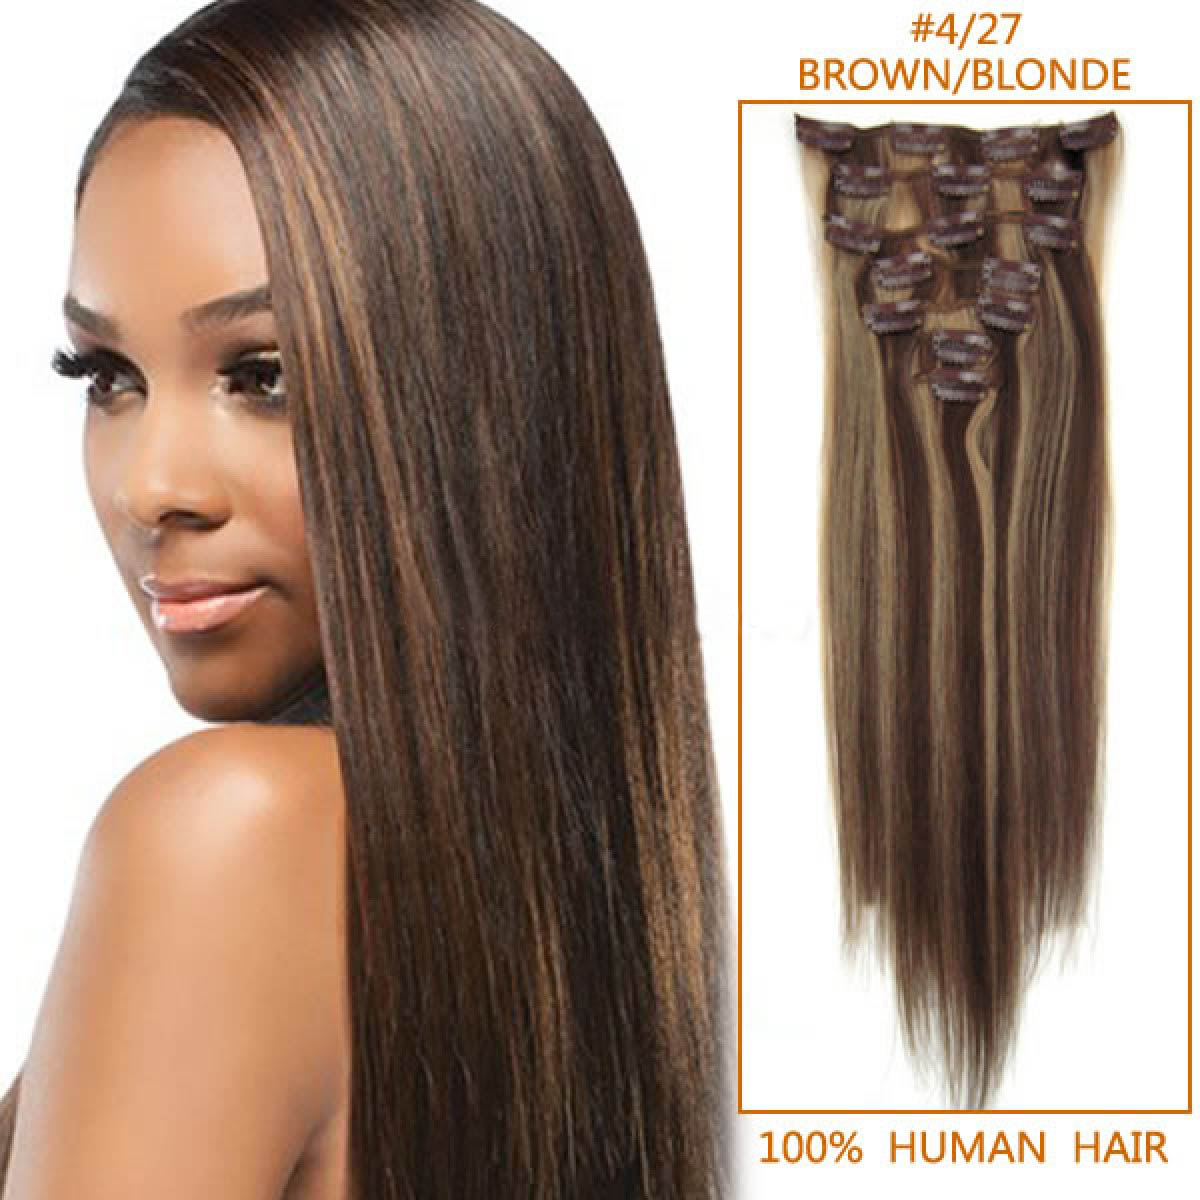 Human Hair Extensions Clip In Sally Hrotelrehberii